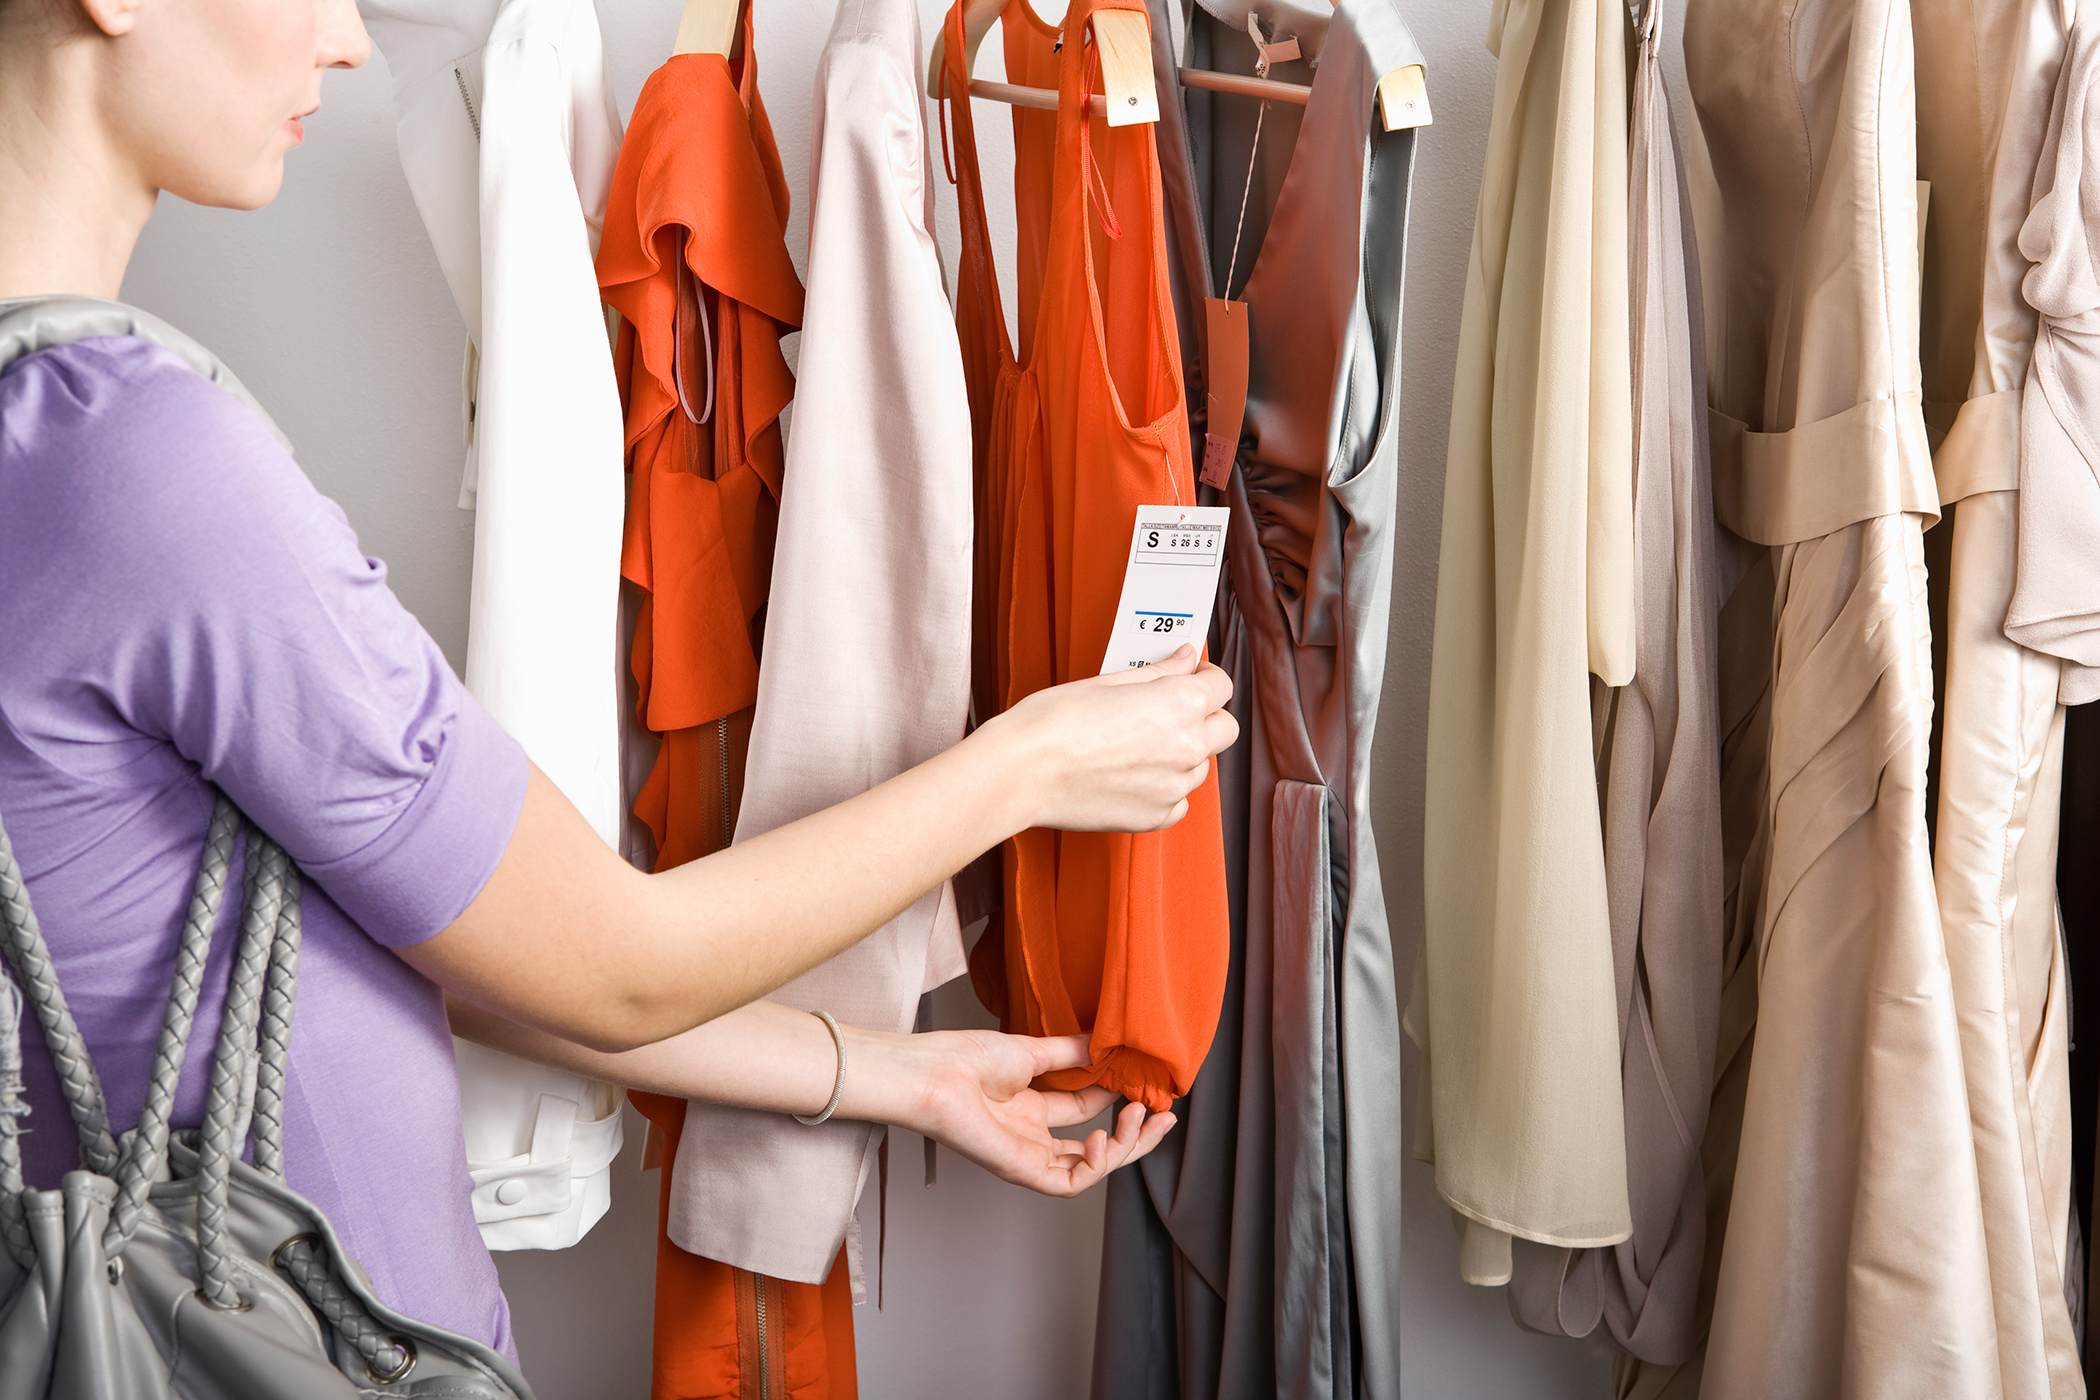 woman checking price tags